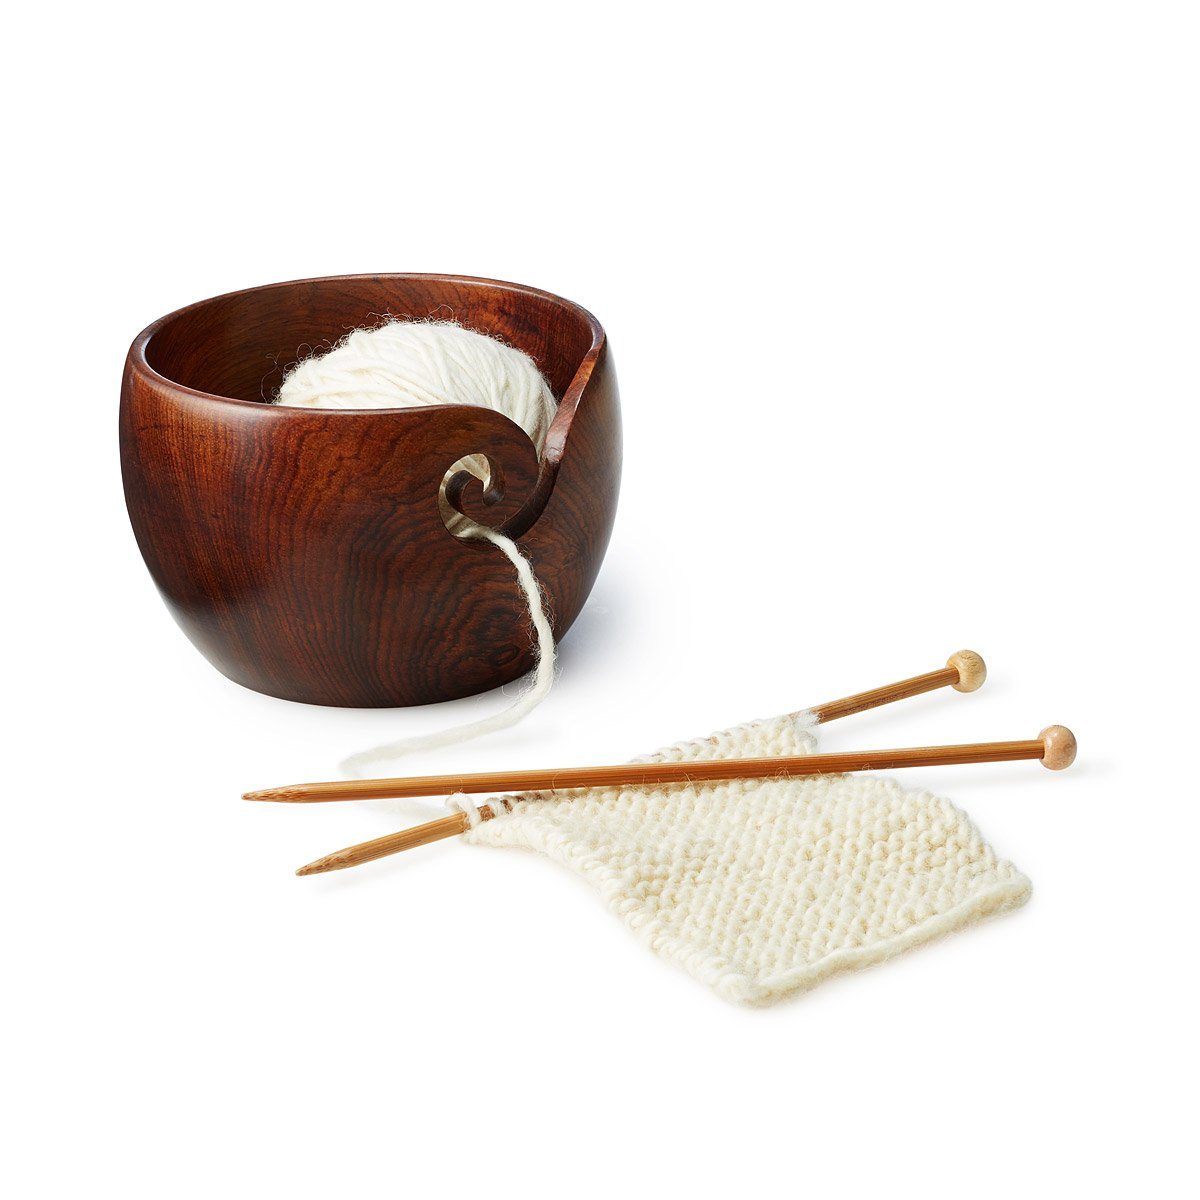 Premium Rosewood Crafted Wooden Portable Yarn Bowl Holder for Knitting Crochet 6 x 6 x 4 inch Christmas Gift Set | Hind Handicrafts